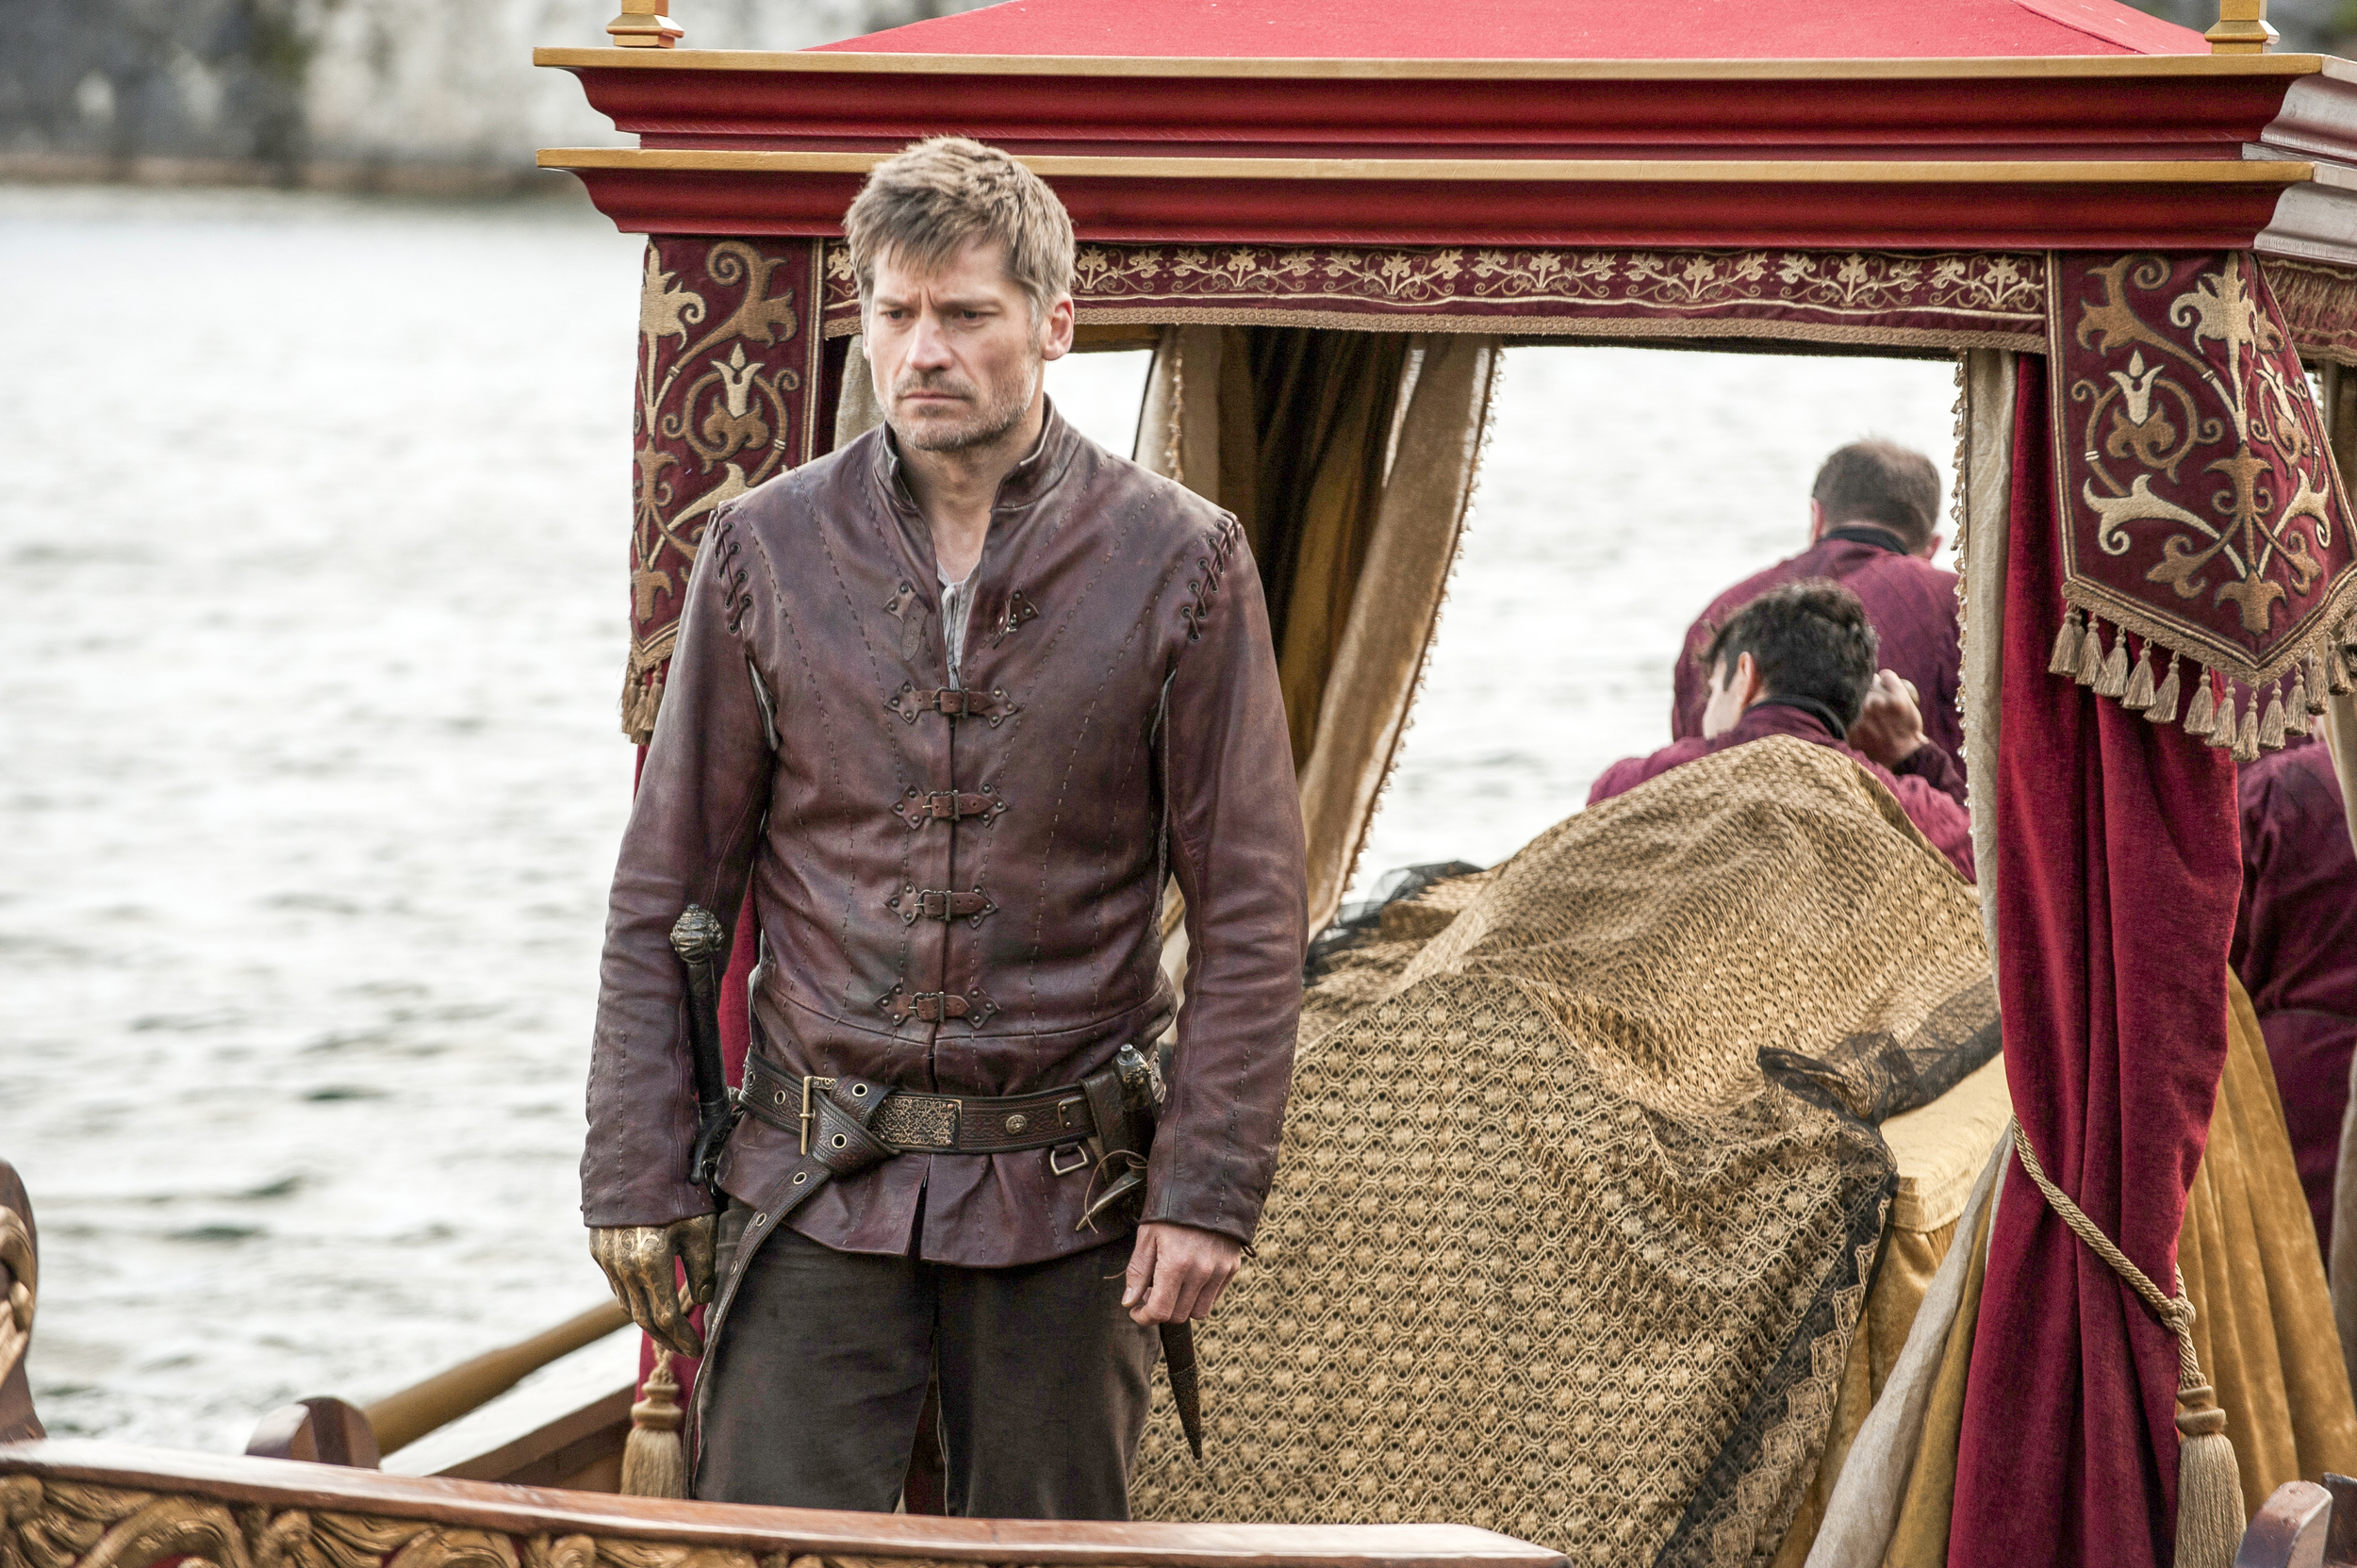 game of thrones season 6 photos, jaime lannister, myrcella, boat